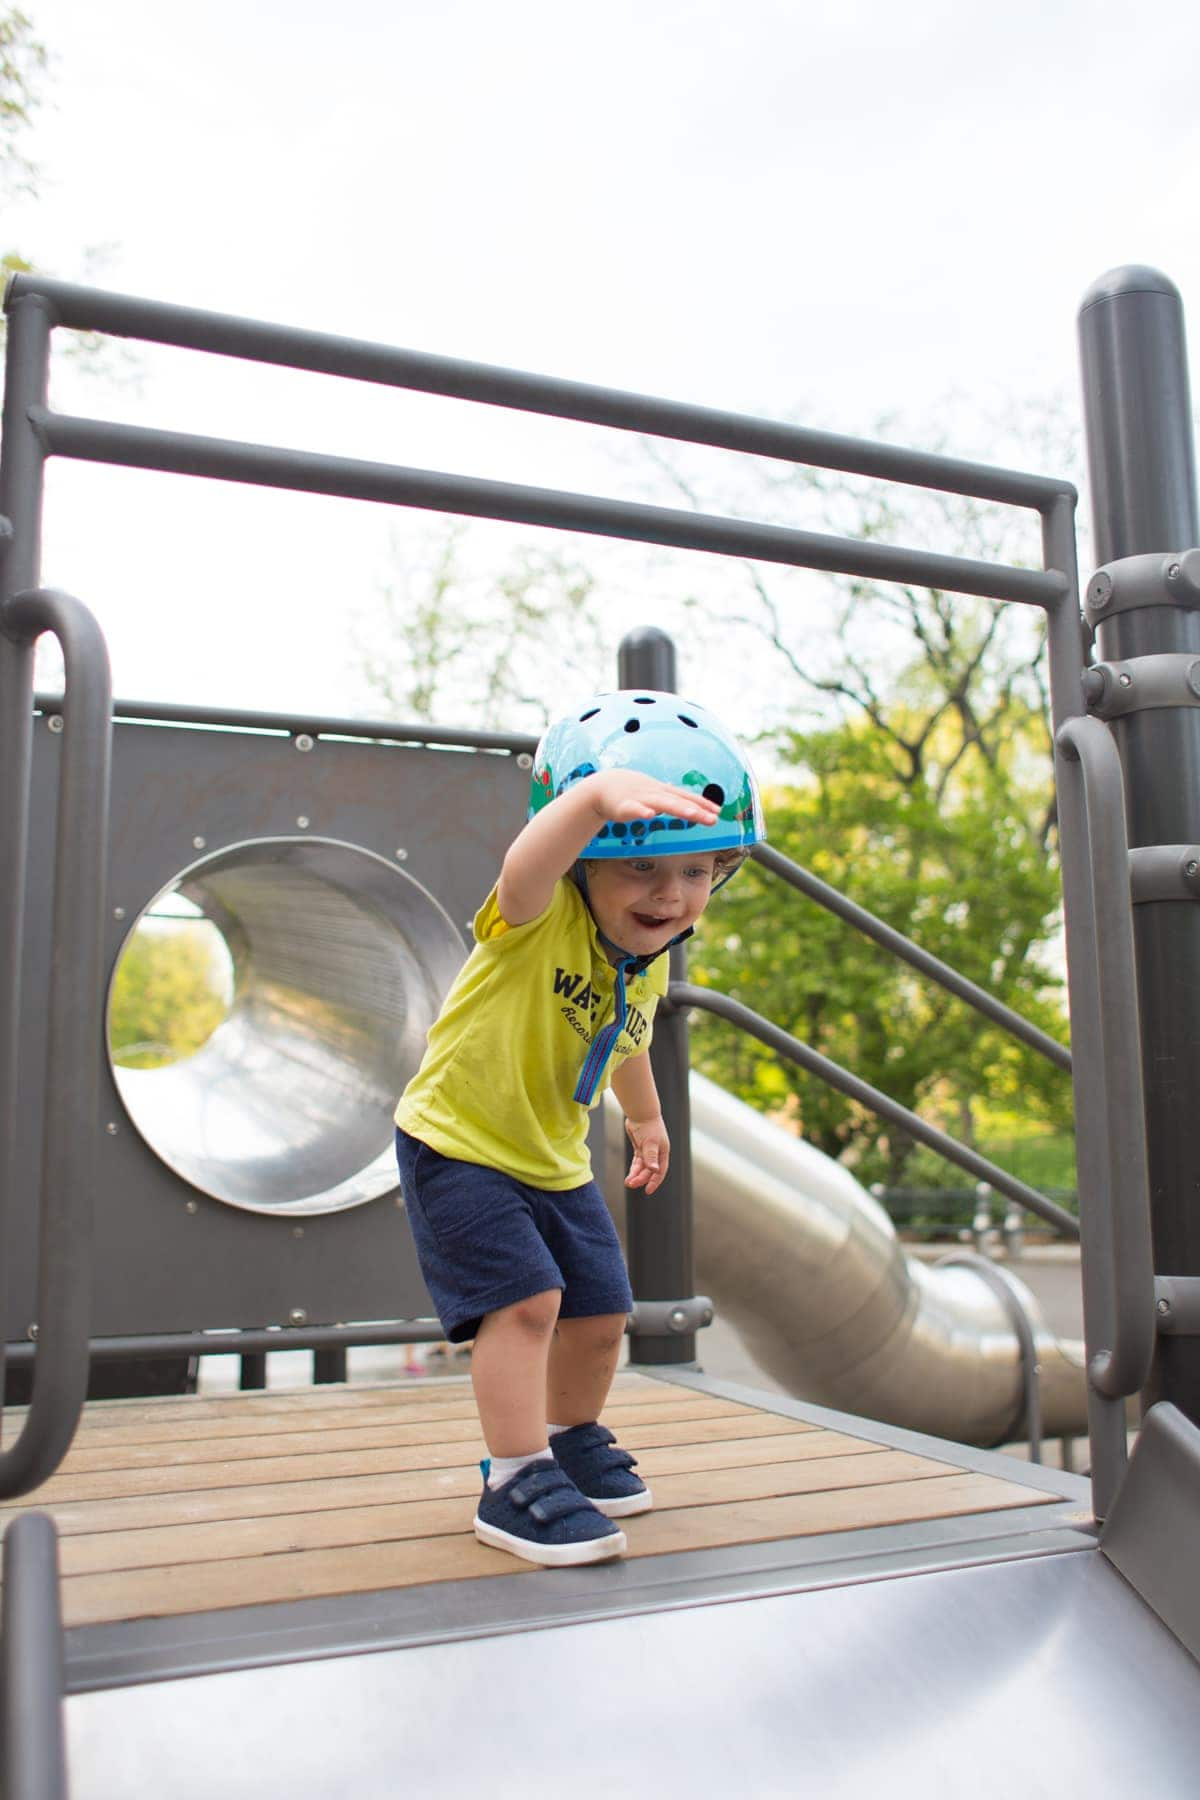 Eddie playing on a play structure